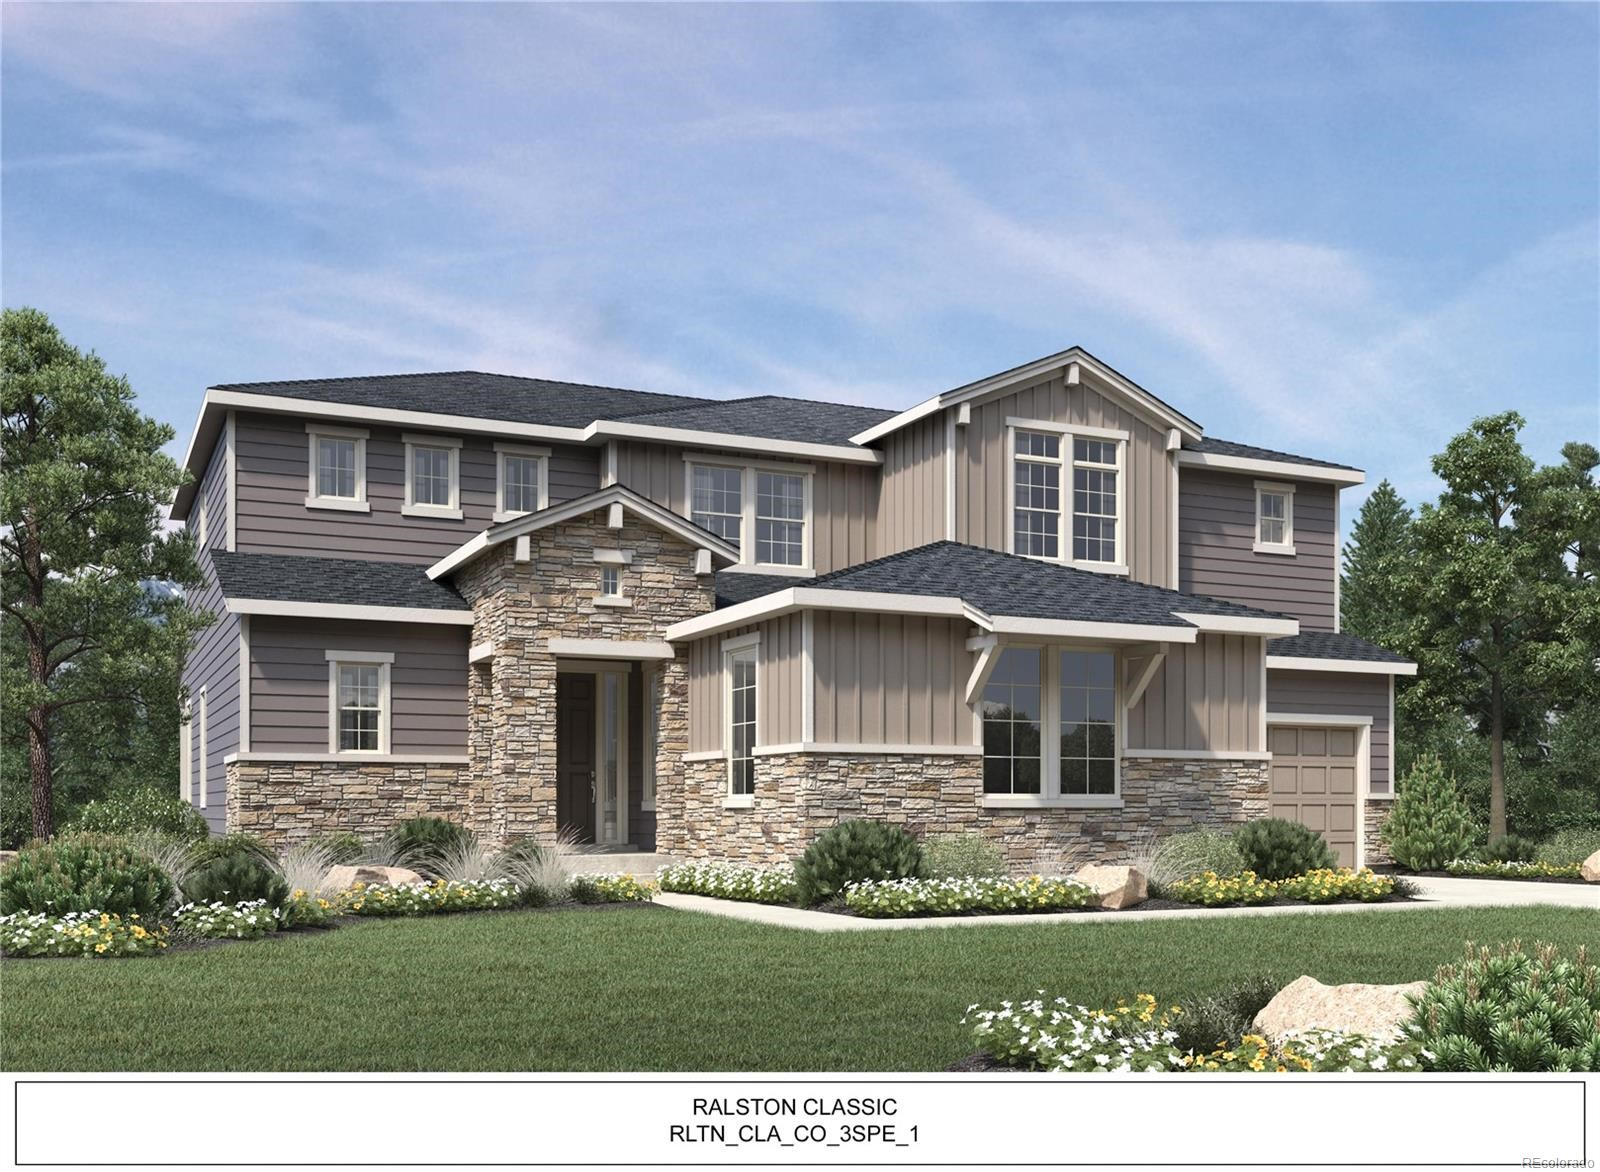 MLS# 3379423 - 1 - 6132 Eagle Roost Drive, Fort Collins, CO 80528